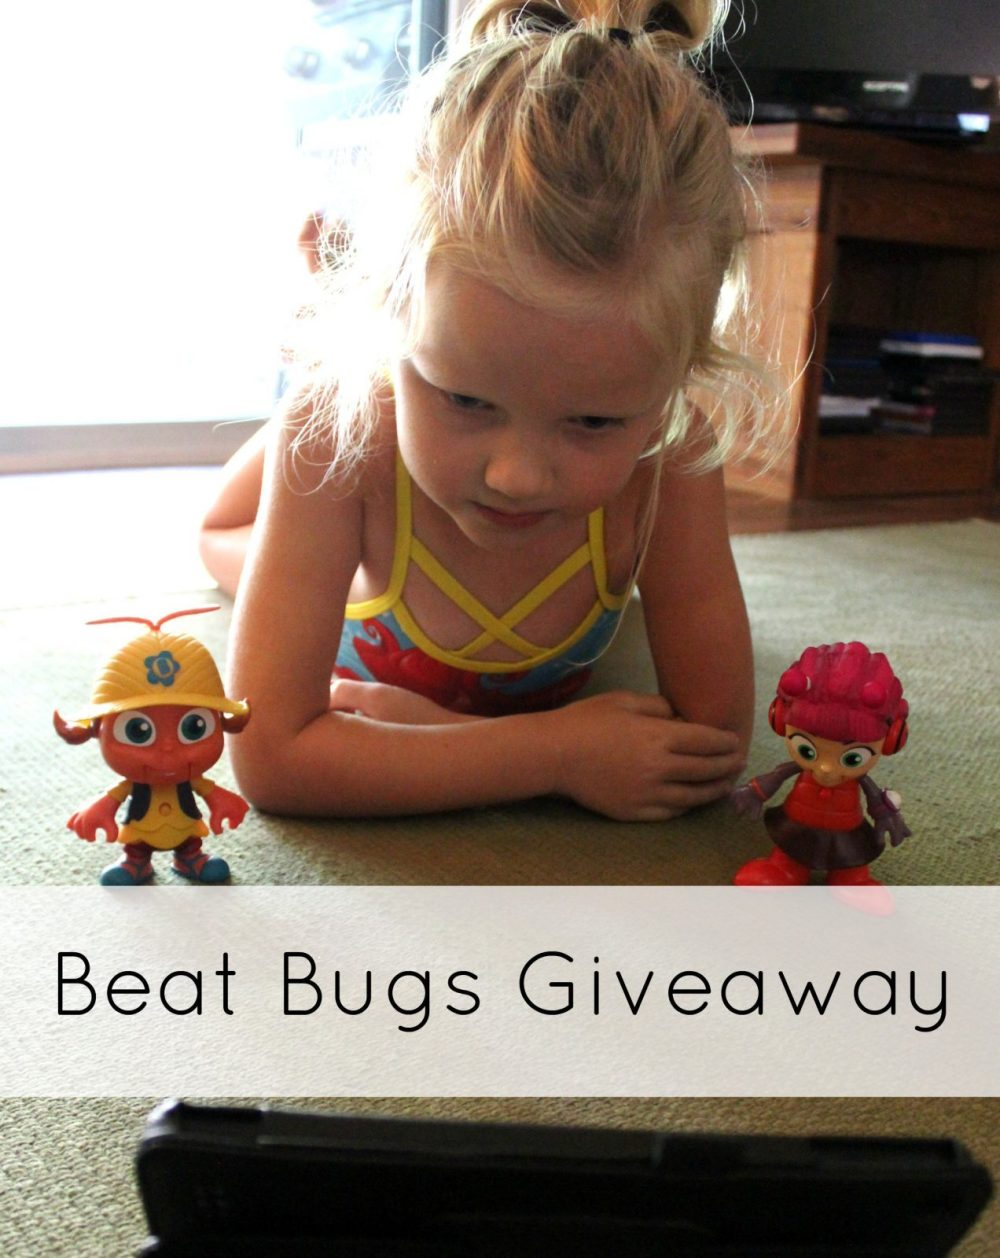 beat bugs giveaway pinterest image